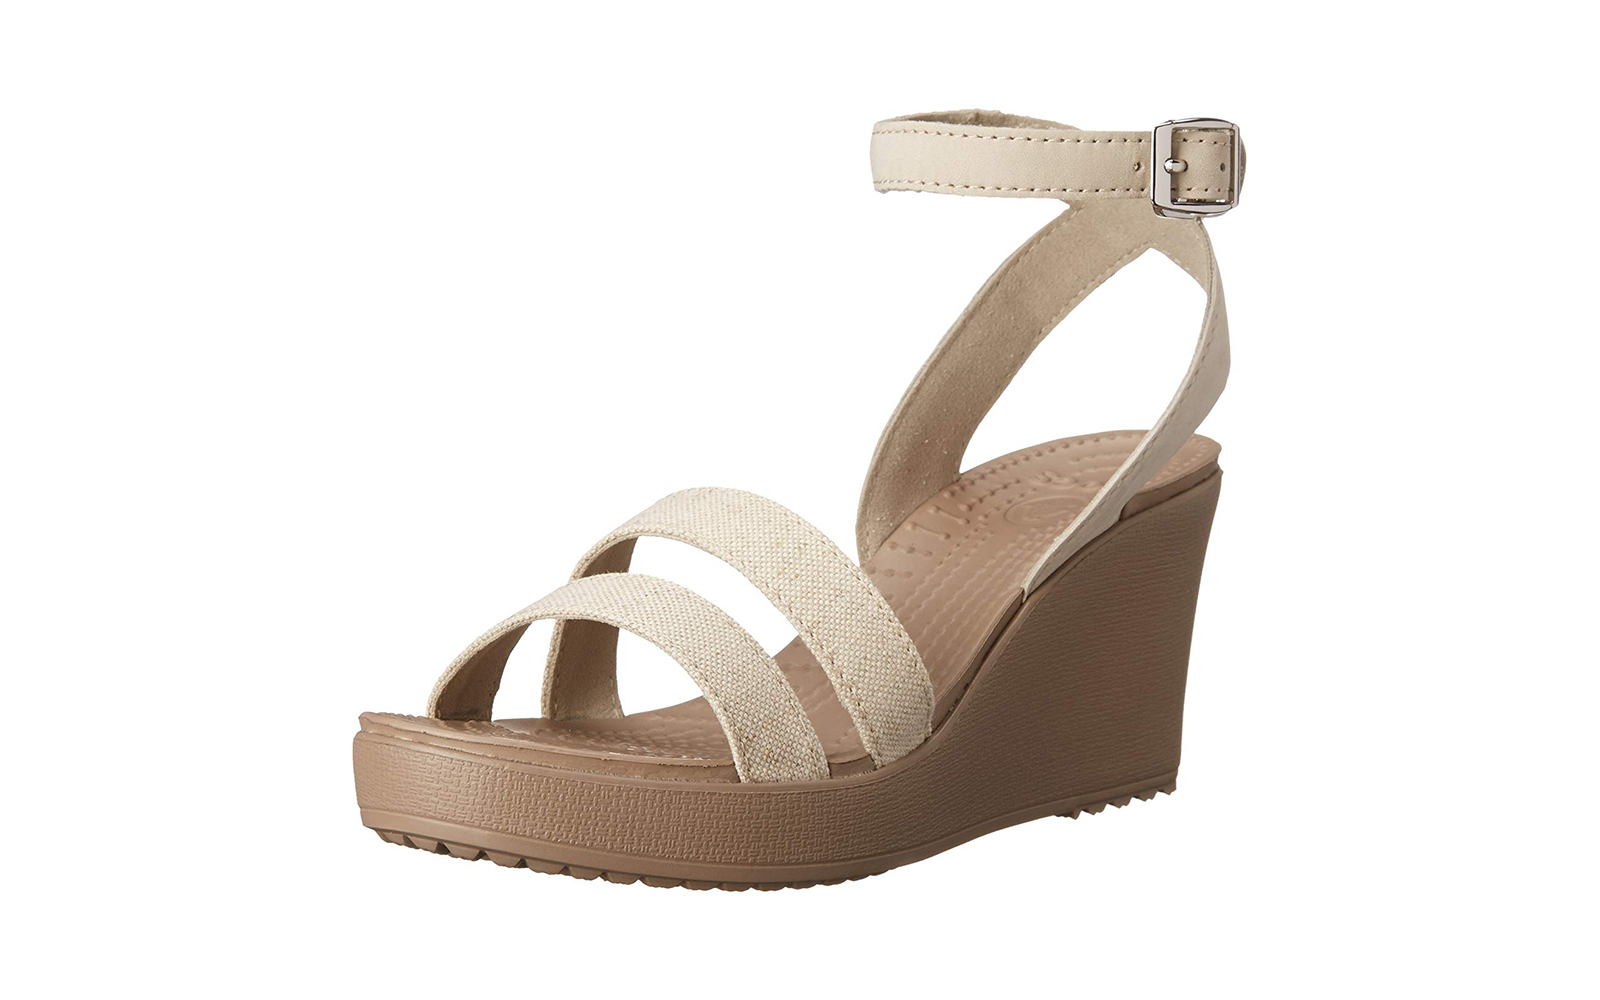 Crocs Leigh Wedge Sandal Shoe